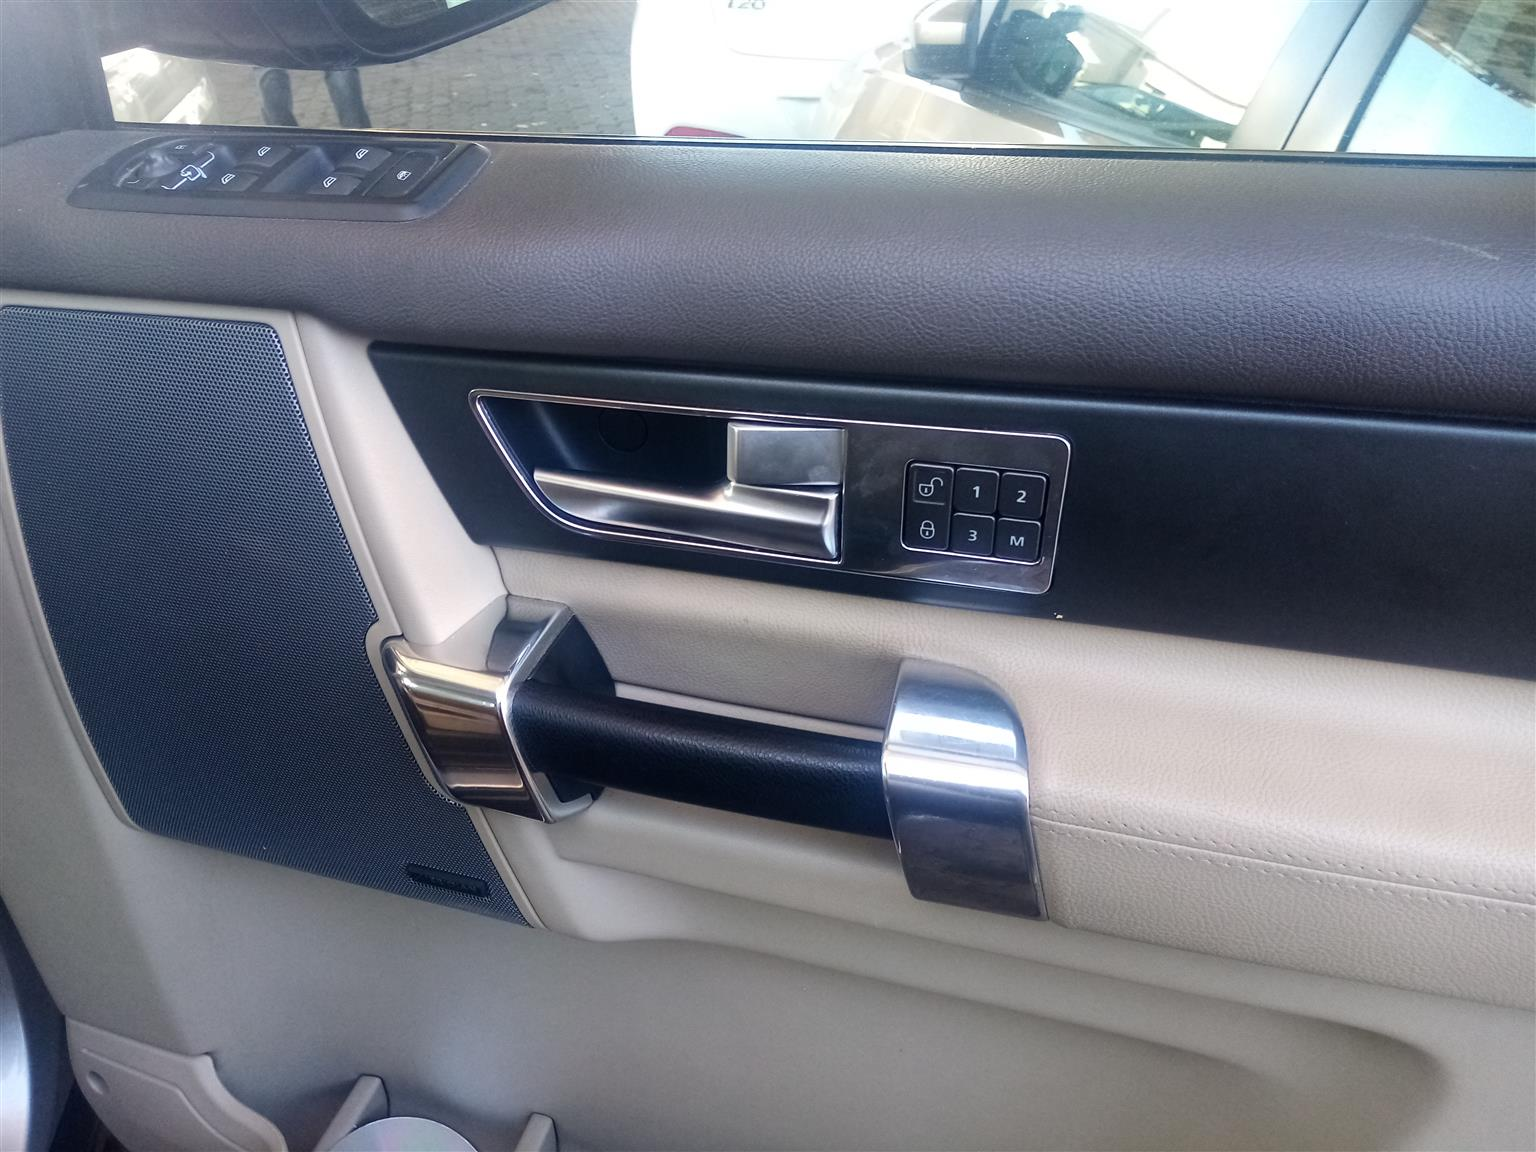 Automatic LandRover Discovery 4 SE 3.0 2015